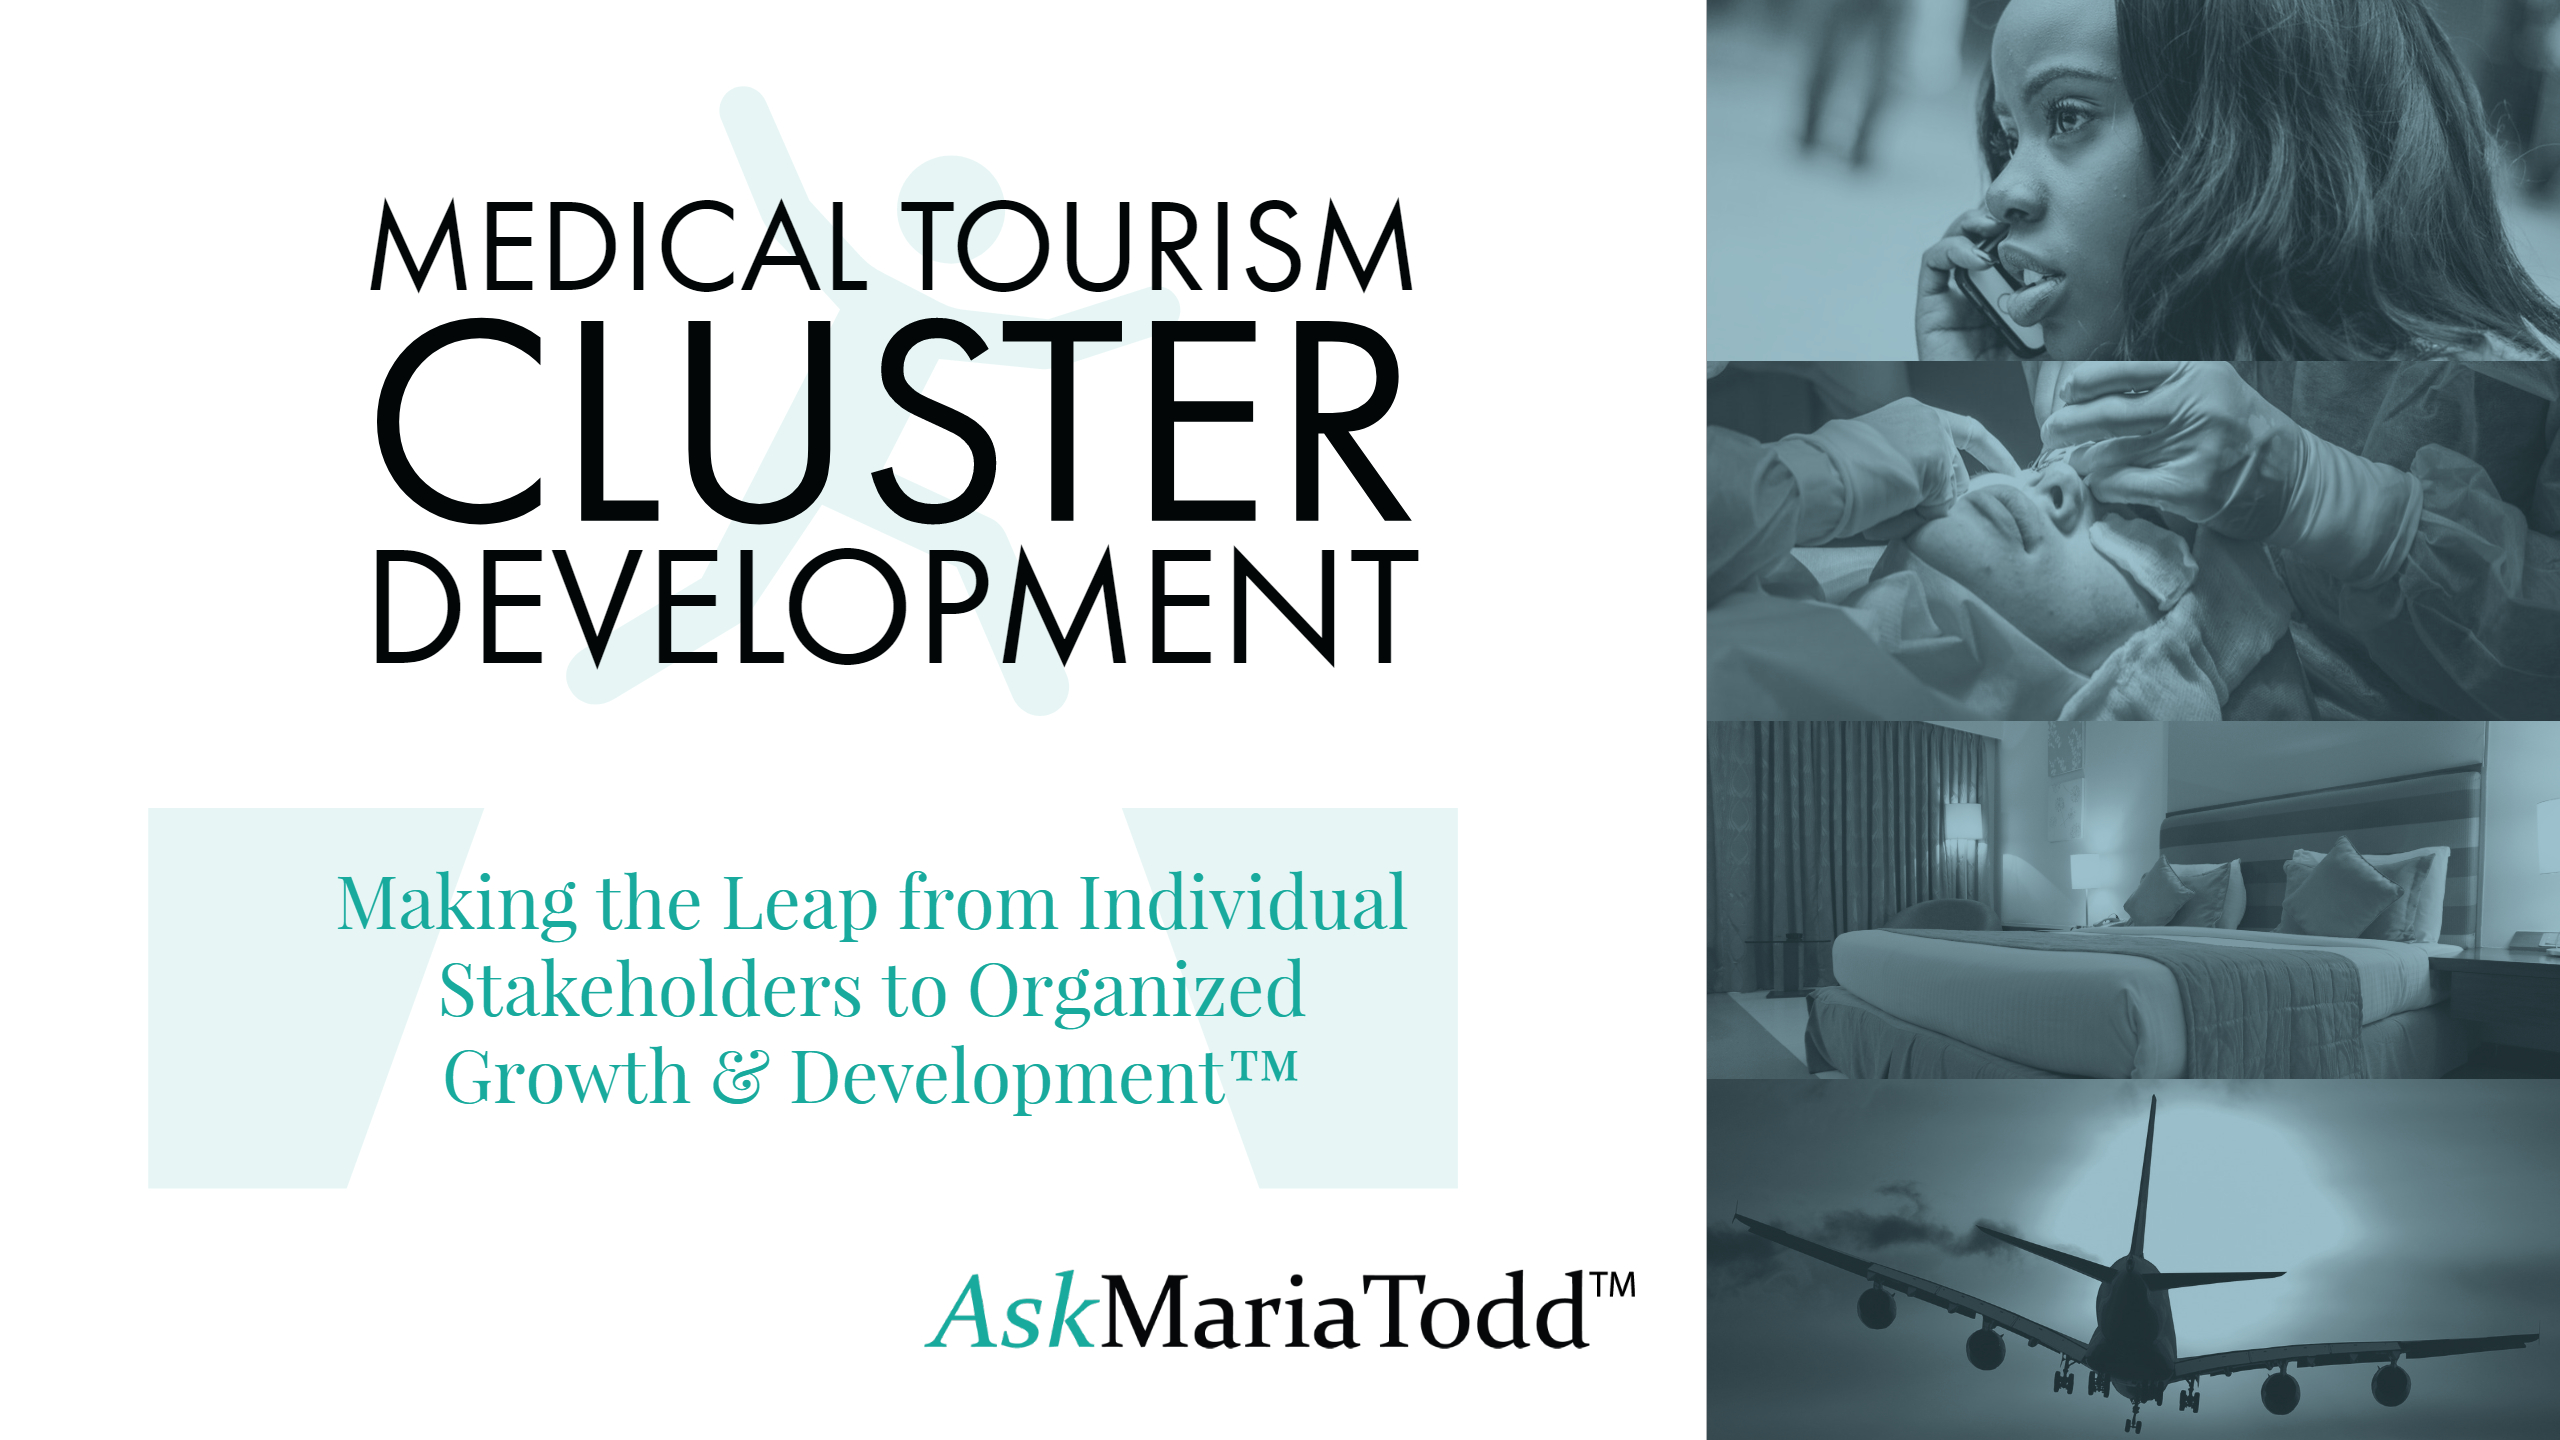 MEDICAL TOURISM CLUSTER DEVELOPMENT WORKSHOP with MARIA TODD